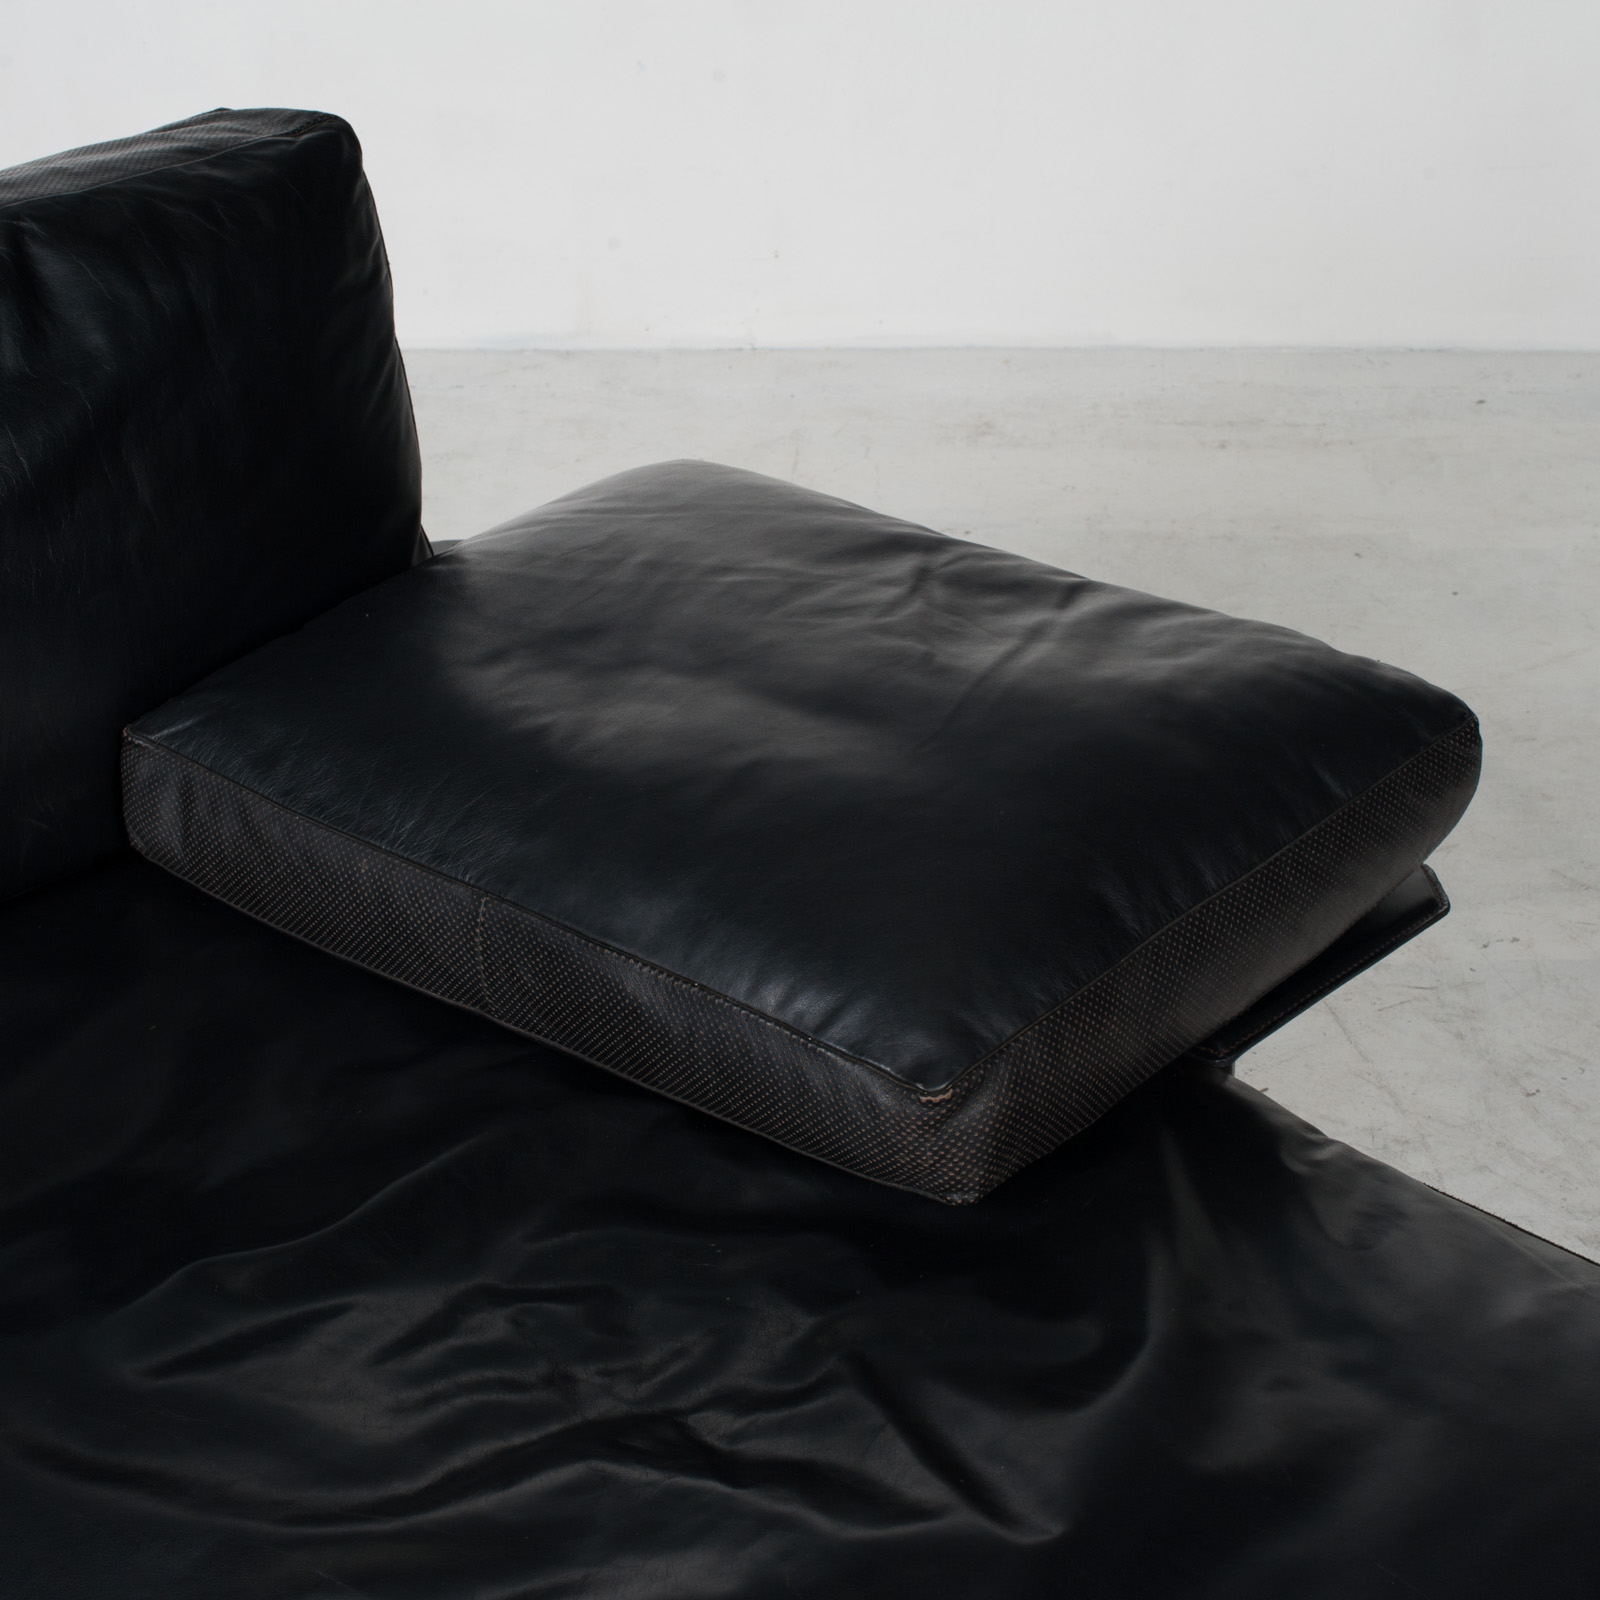 Model Diesis Chaise Lounge For B&b Italia By Antonio Citterio In Black Leather 1970s Italy 06